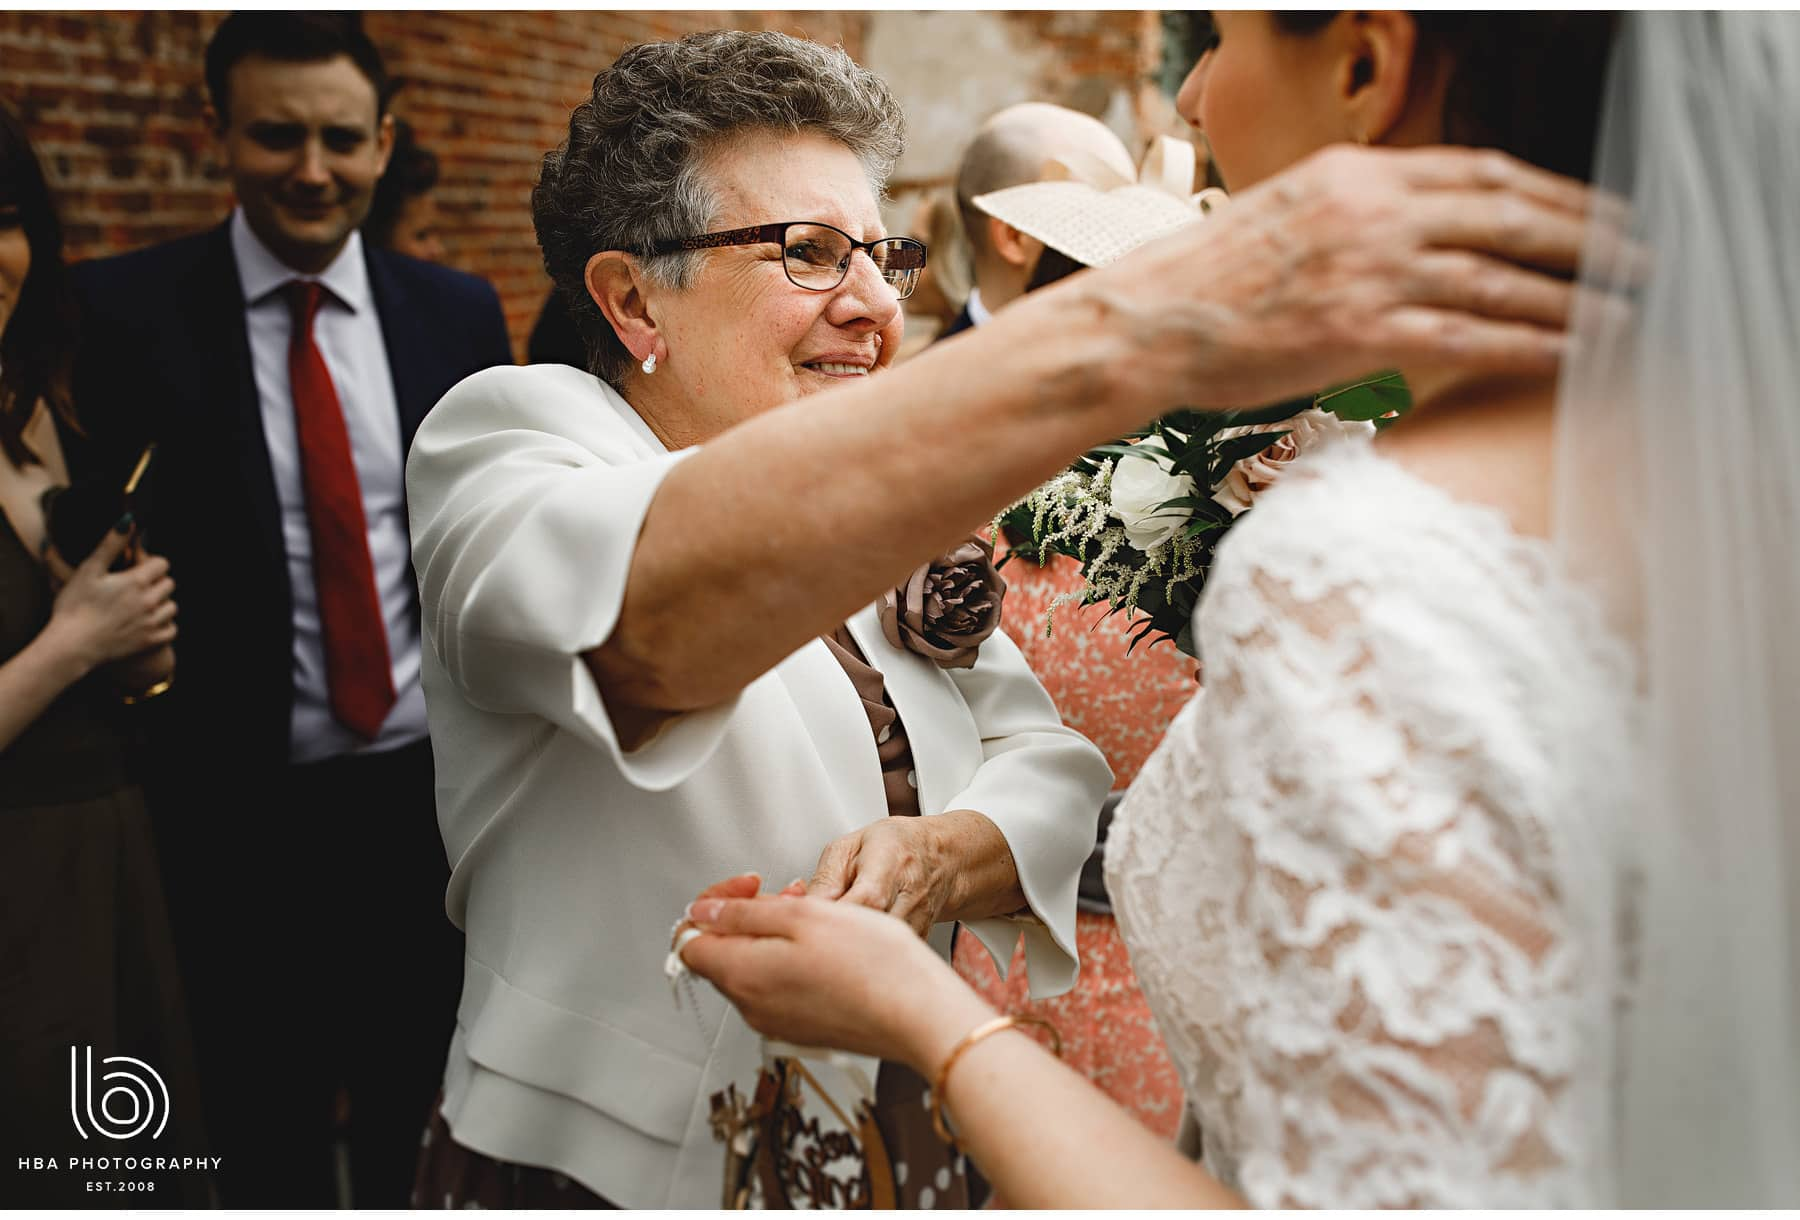 grandma hugging the bride